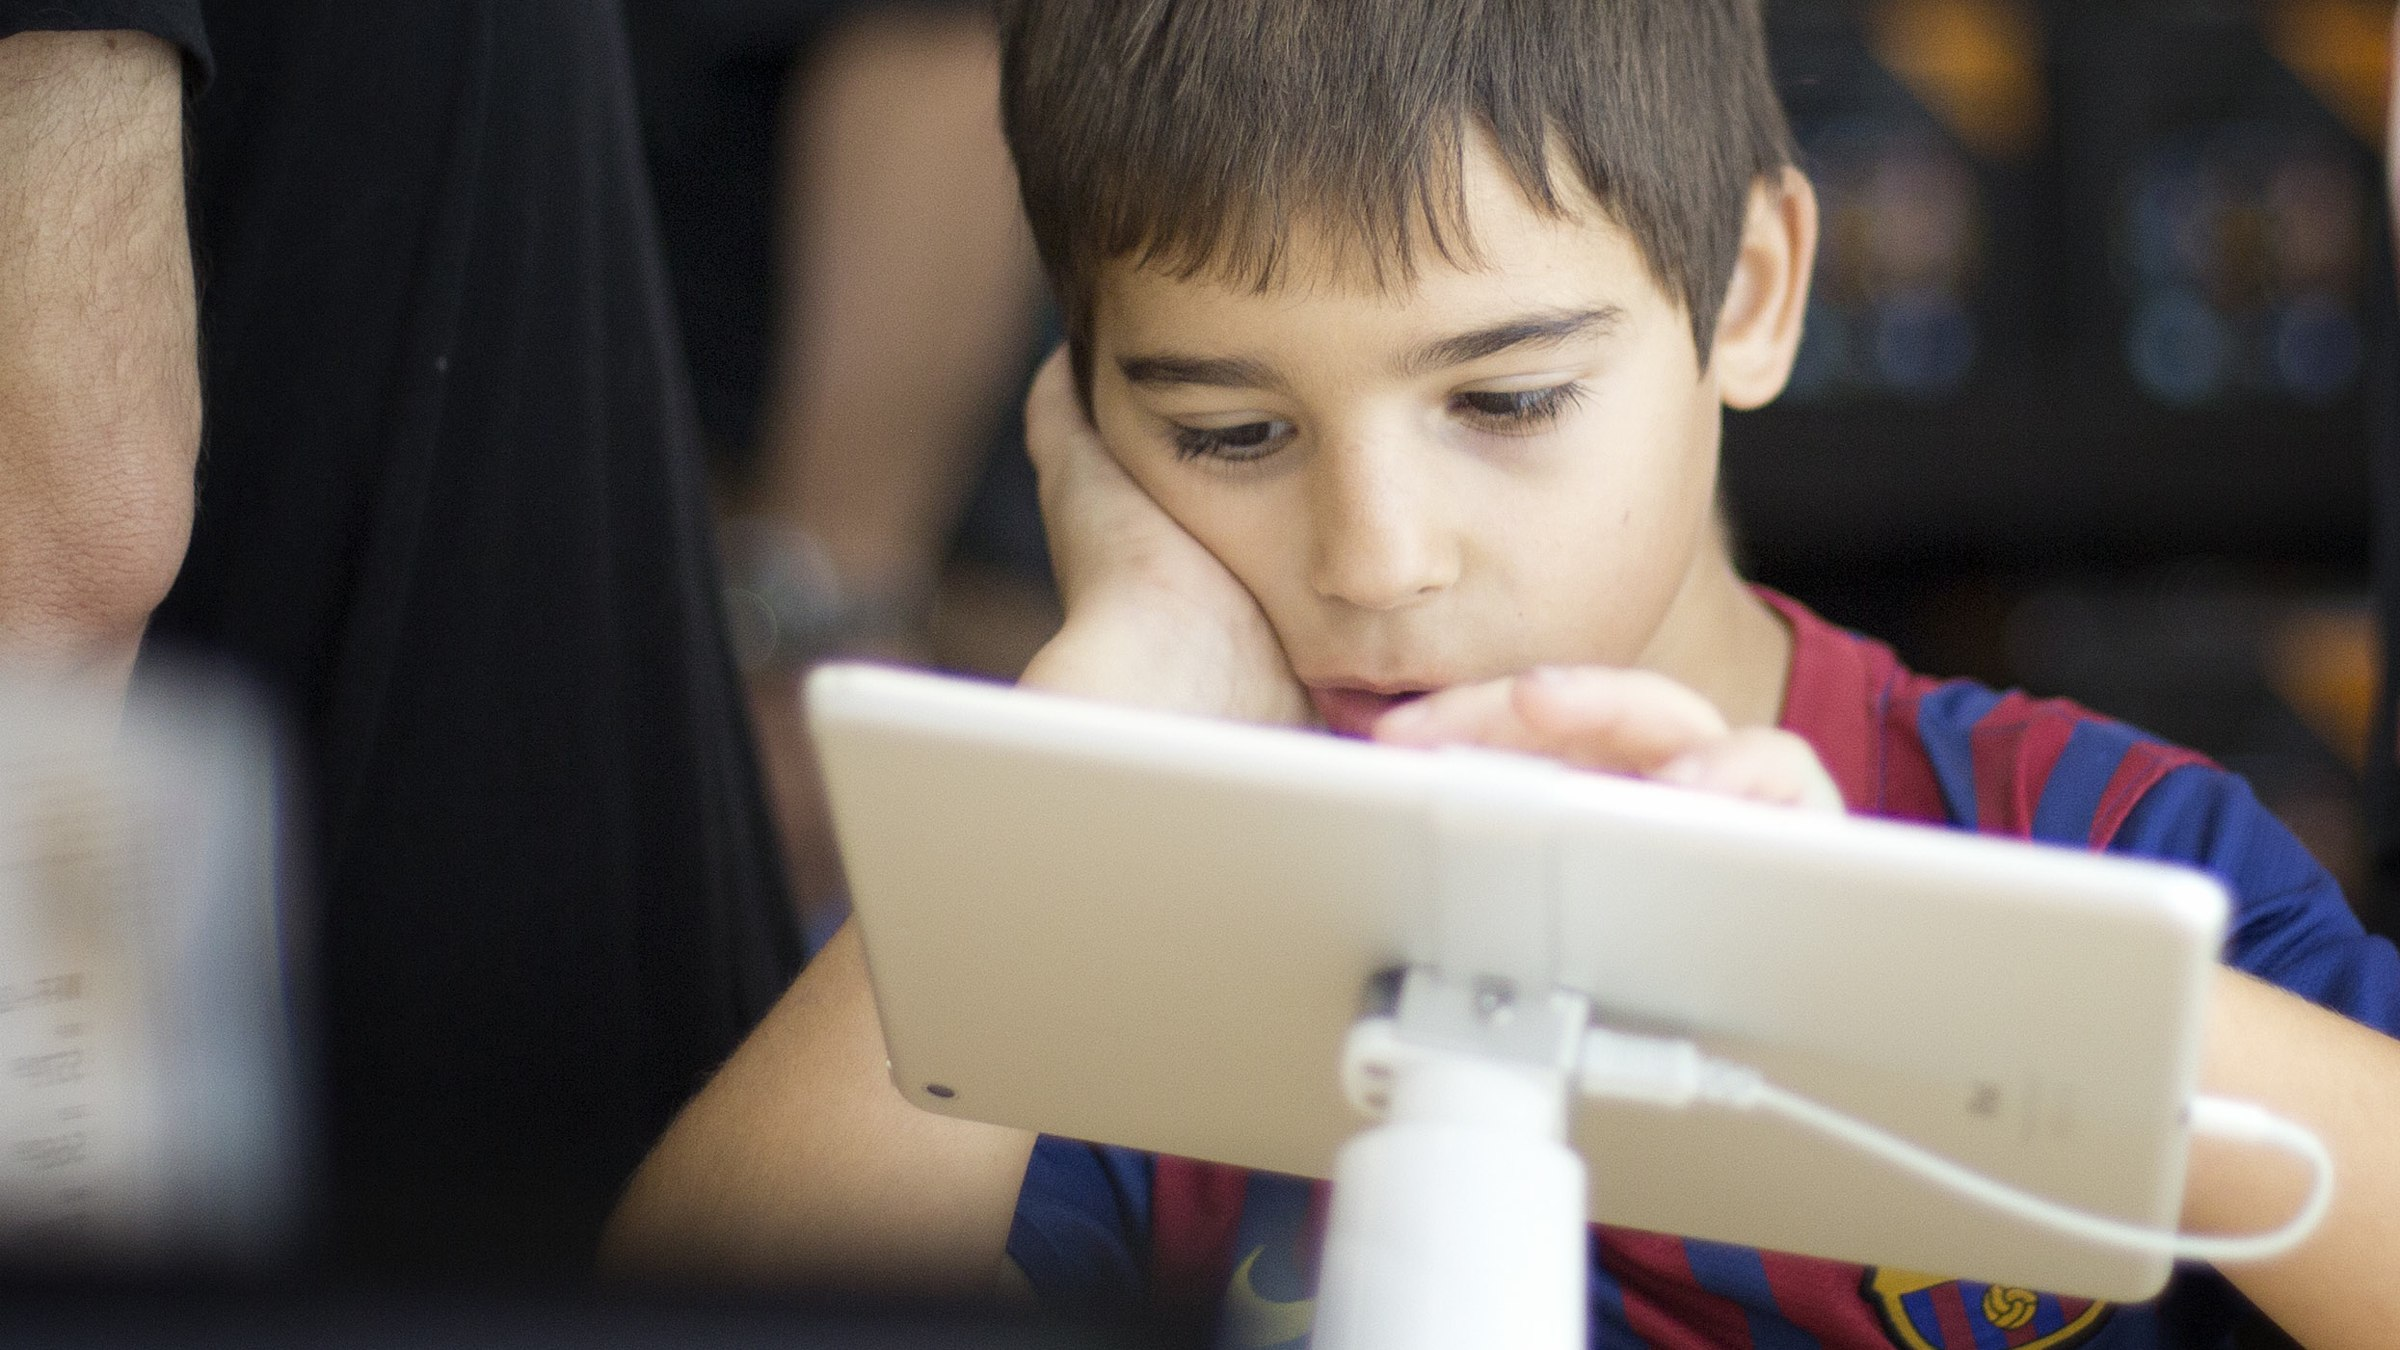 Jacob Blacker plays with an iPad, the type he wants for the Christmas holiday, as his dad shopped for a tablet at the Pembroke Pines, Fla. Best Buy store, Friday, Nov. 29, 2013. Black Friday, the day after Thanksgiving, is the nation's biggest shopping day of the year.  (AP Photo/J Pat Carter)